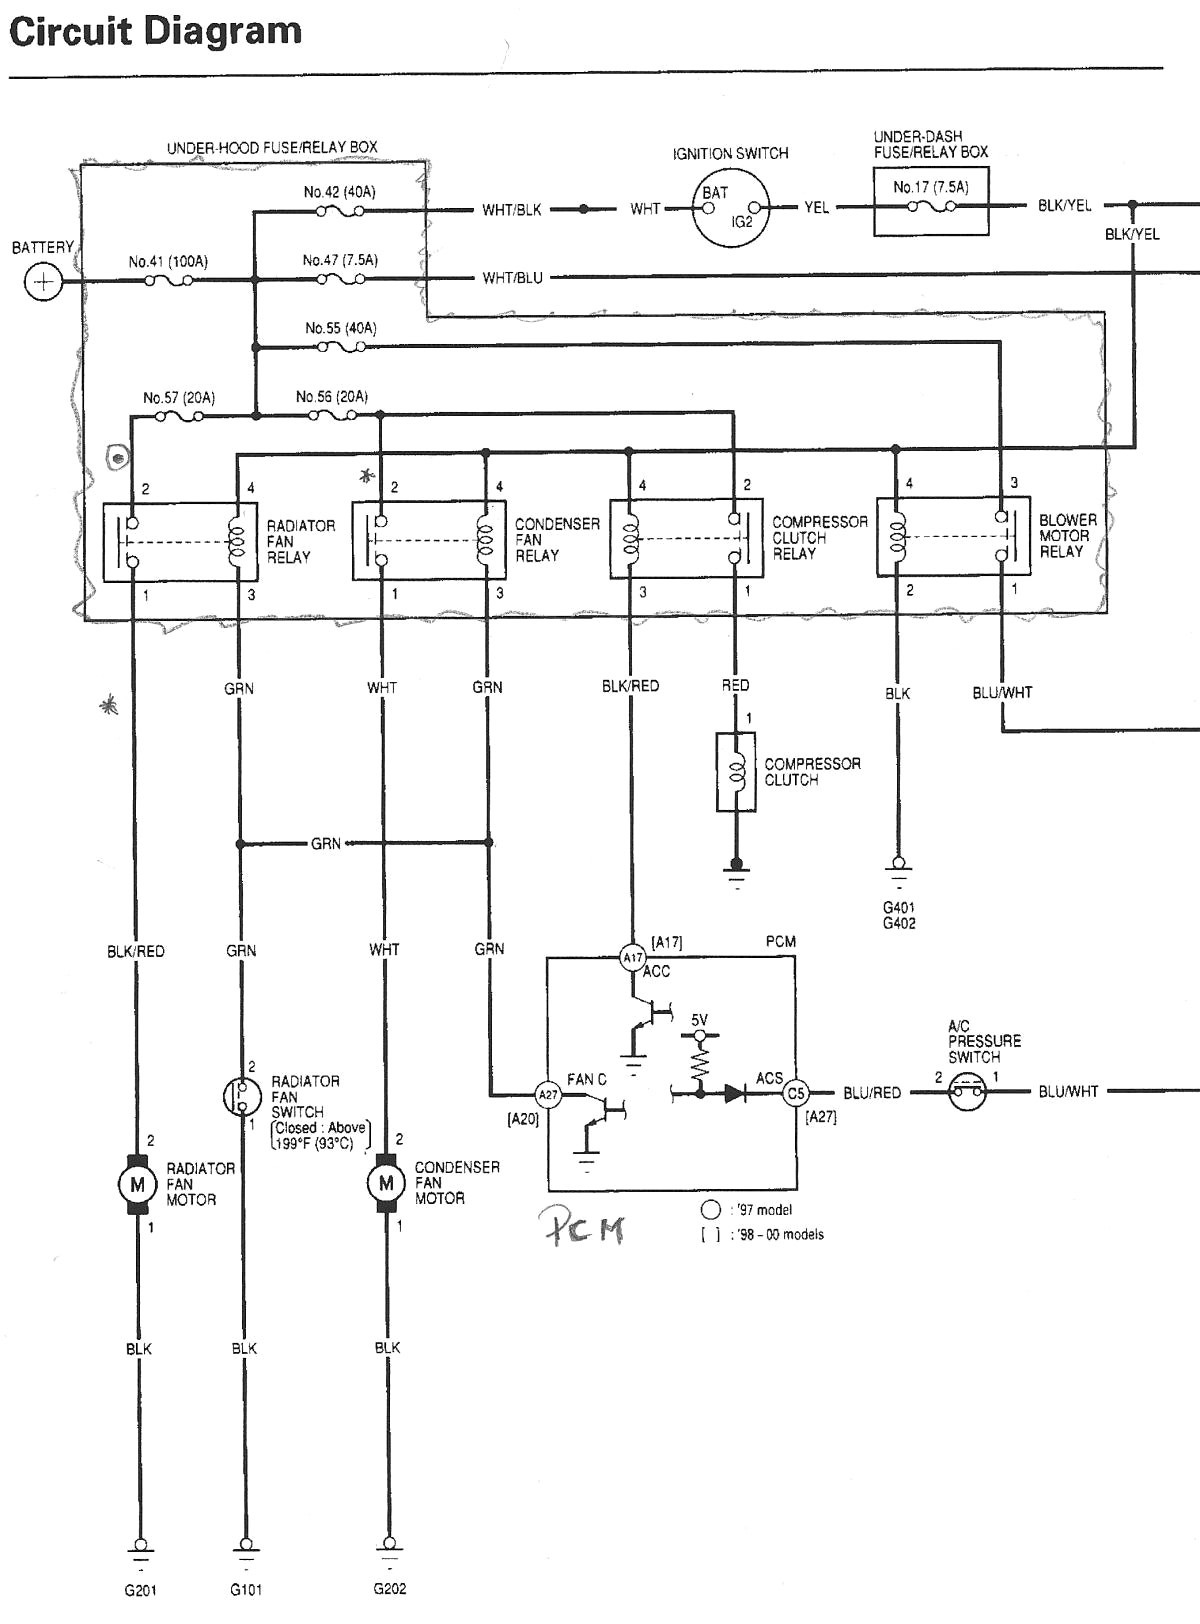 1985 Honda Accord Axle Diagram Wiring Schematic Example Electrical 2011 Diagrams Forum 97 Transmission Rh Detoxicrecenze Com Harness